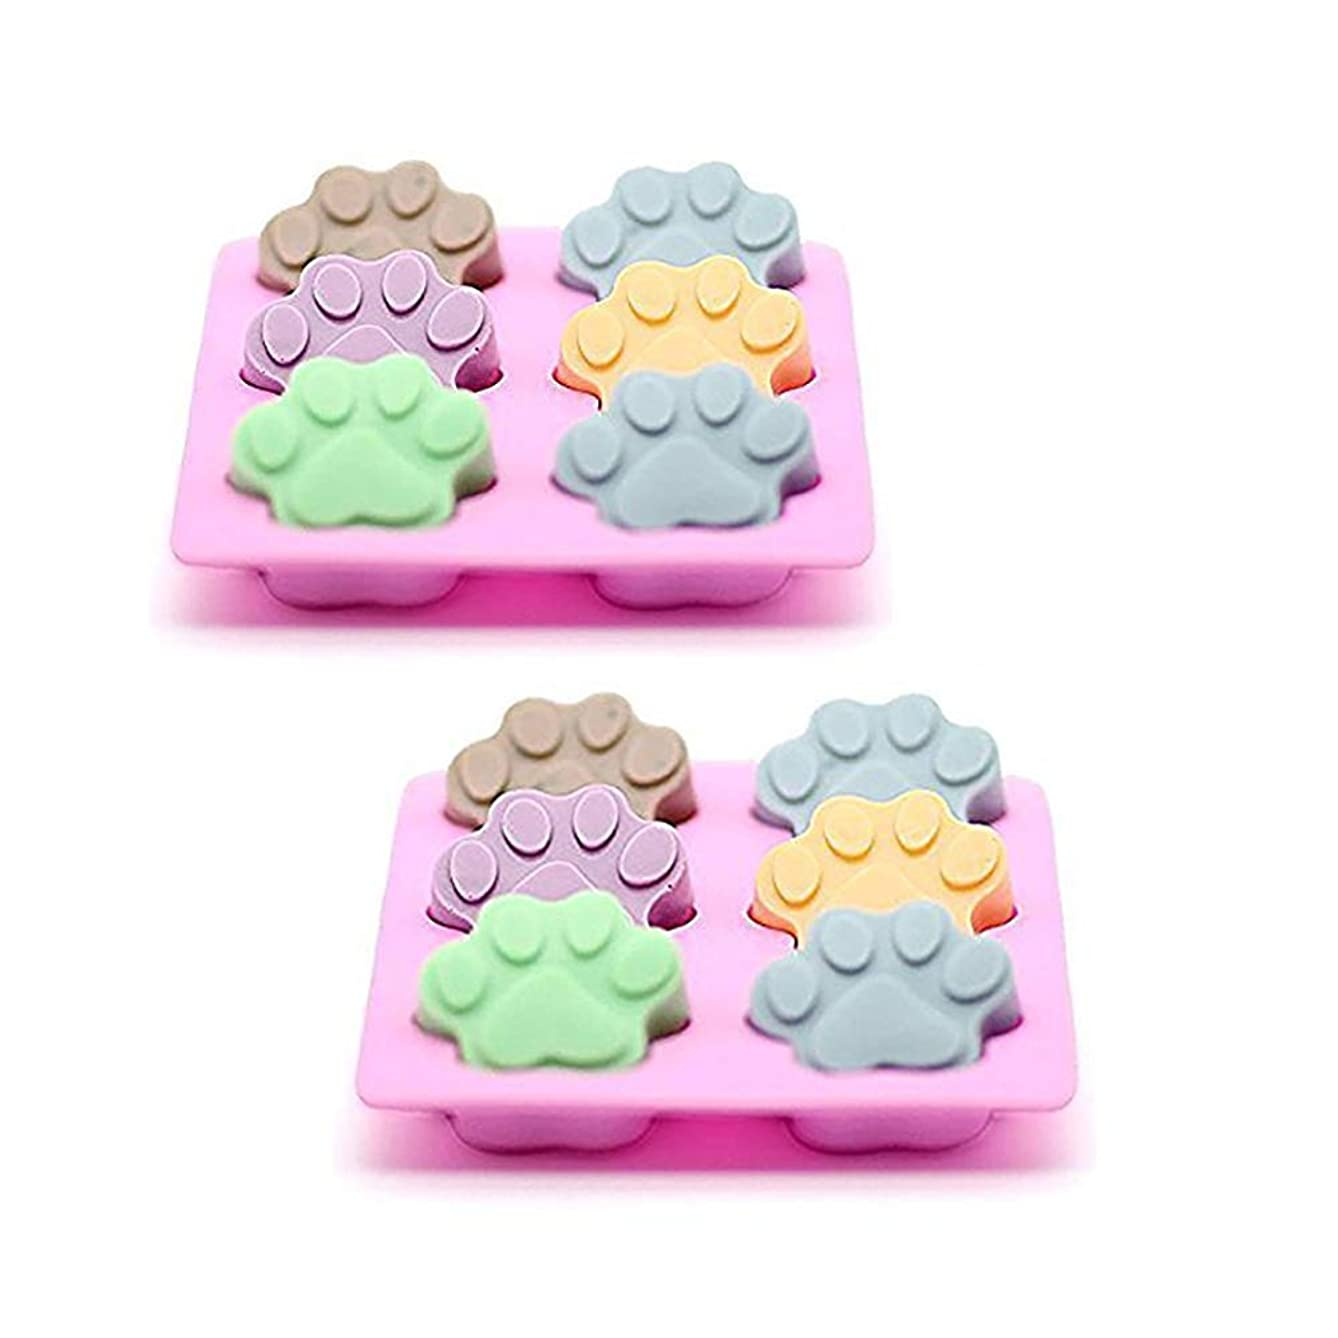 ESA Supplies 2 Pack Cat Soap Molds Soap Making Cat Paw Silicone Soap Making Mould Ice Cube Tray Cupcake Mold 6 Cavity